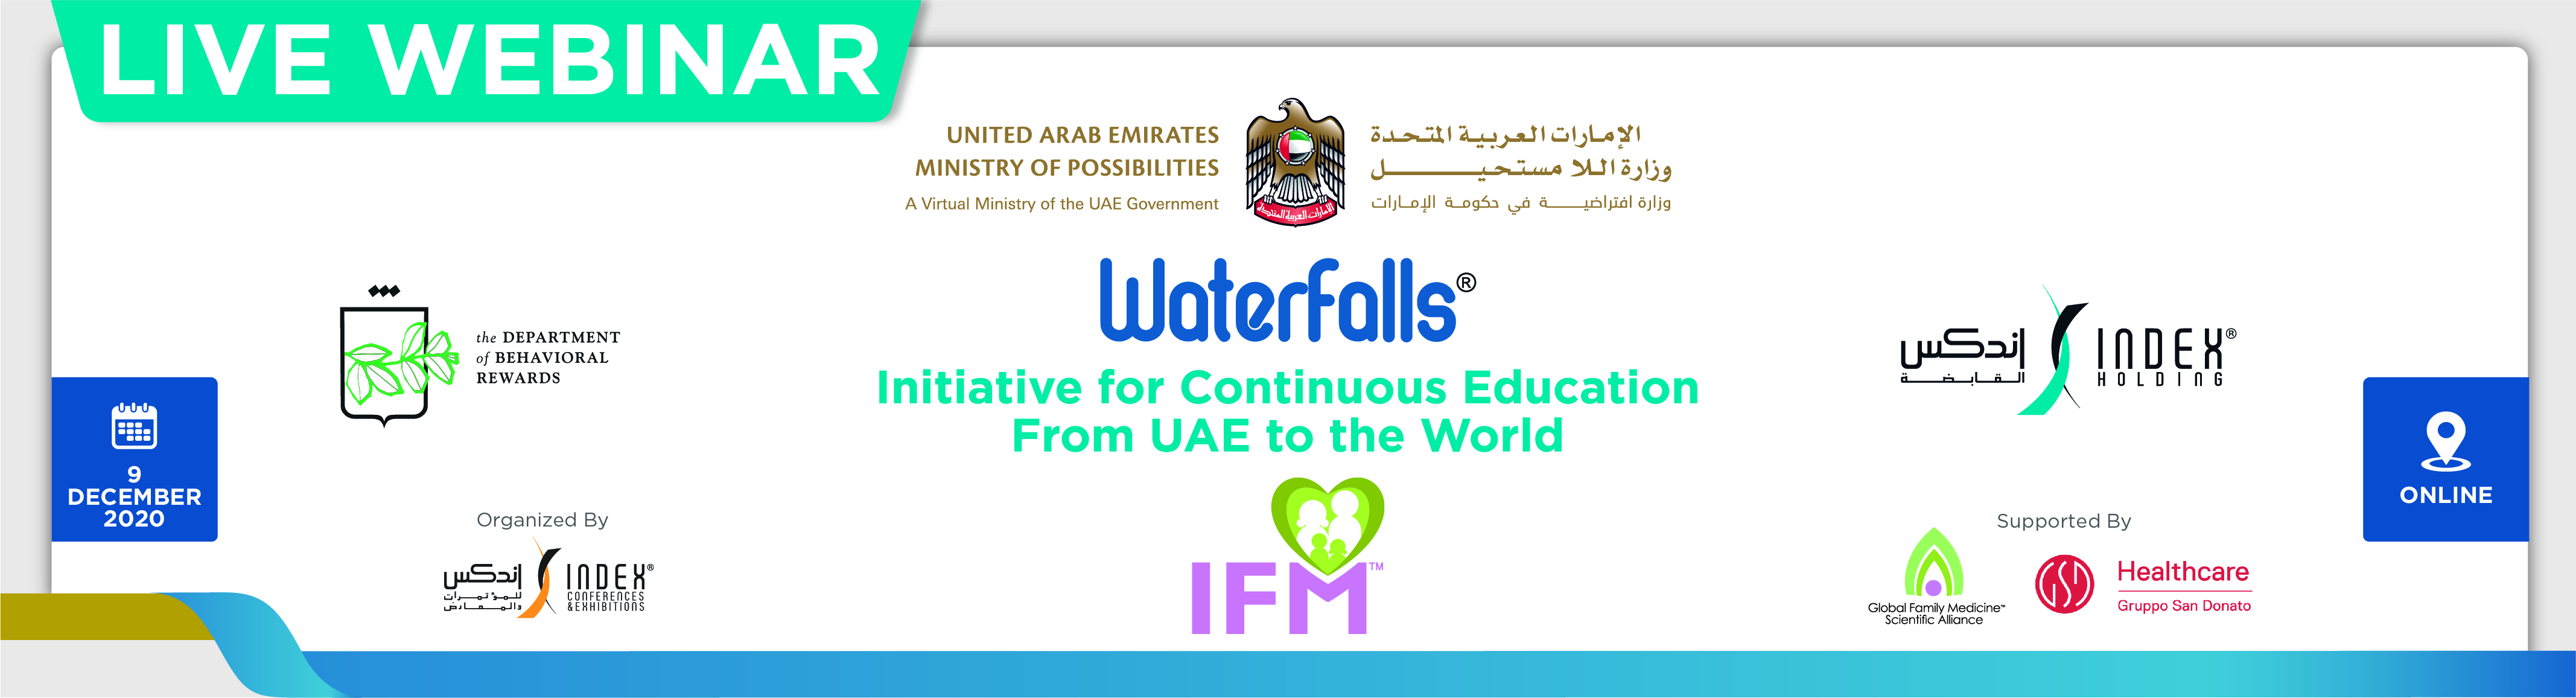 IFM Webinar: Topic-Regain vision using stem cells - Dec 9 (20:00 - 21:00 UAE)